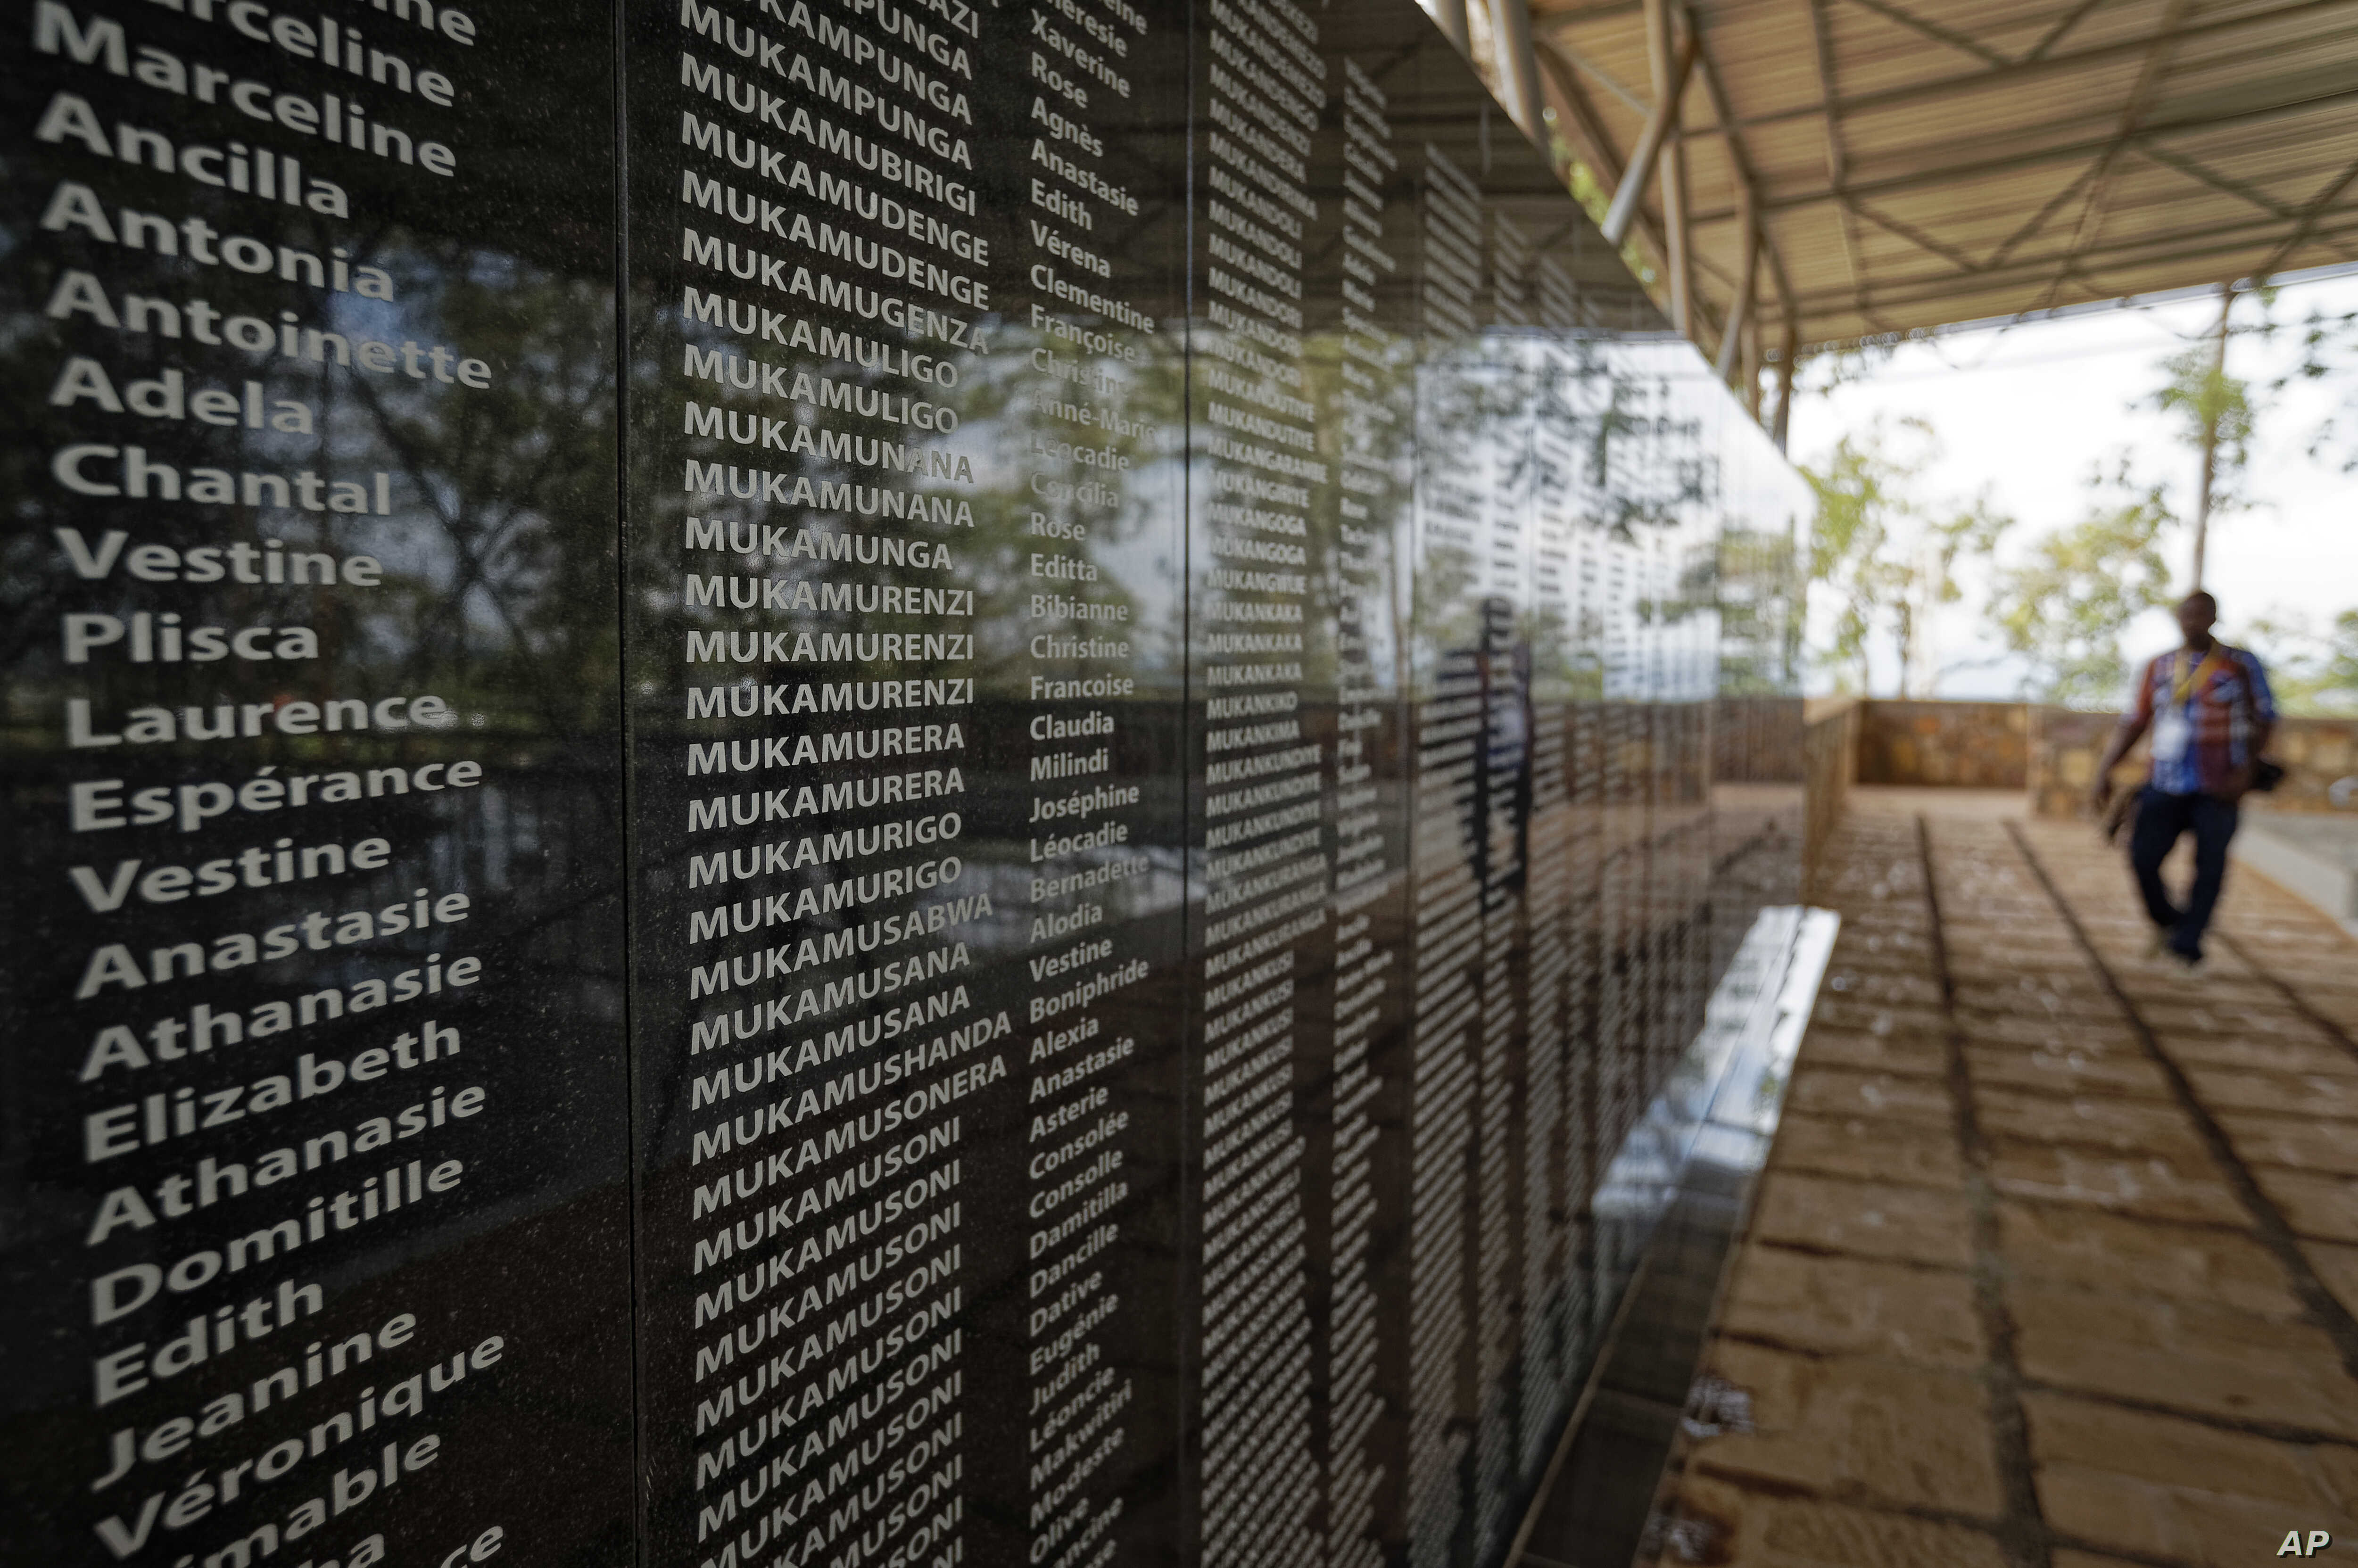 The names of those who were slaughtered as they sought refuge in the church, many with the same surname indicating a family, are written on a memorial to the thousands who were killed in the 1994 genocide in Rwanda.